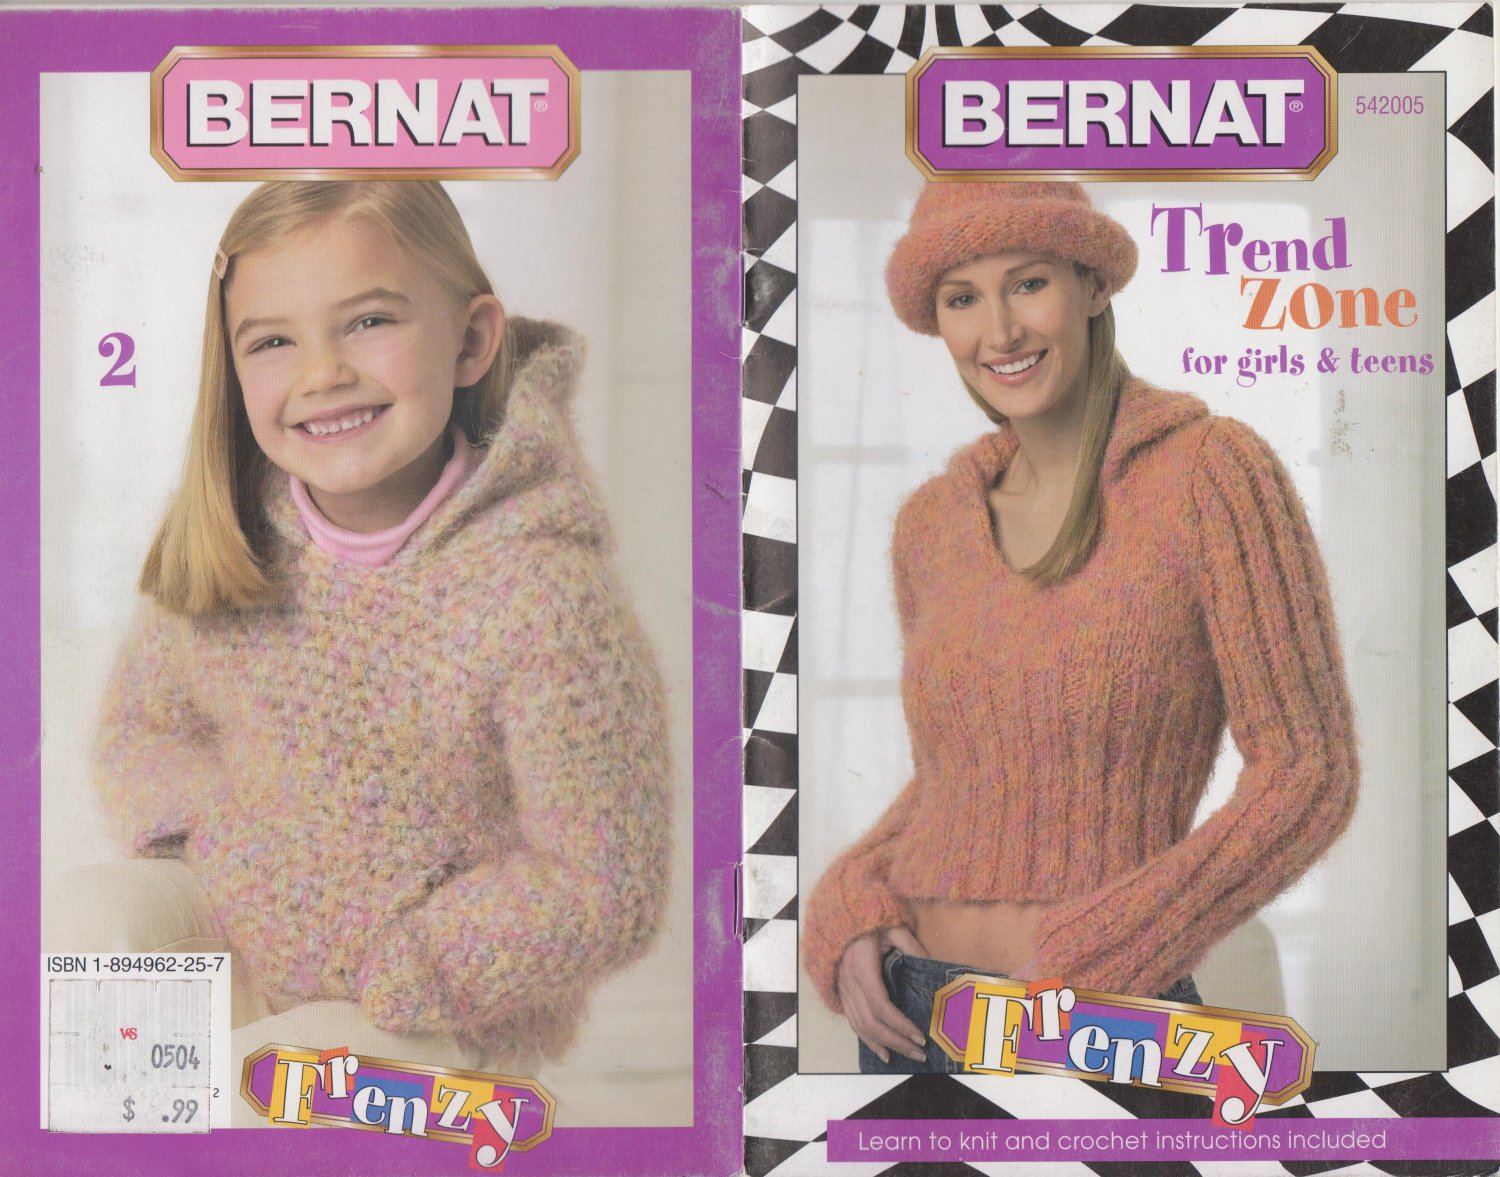 Bernat Trend Zone for girls & Teens Knitting Crochet Pattern Booklet #542005